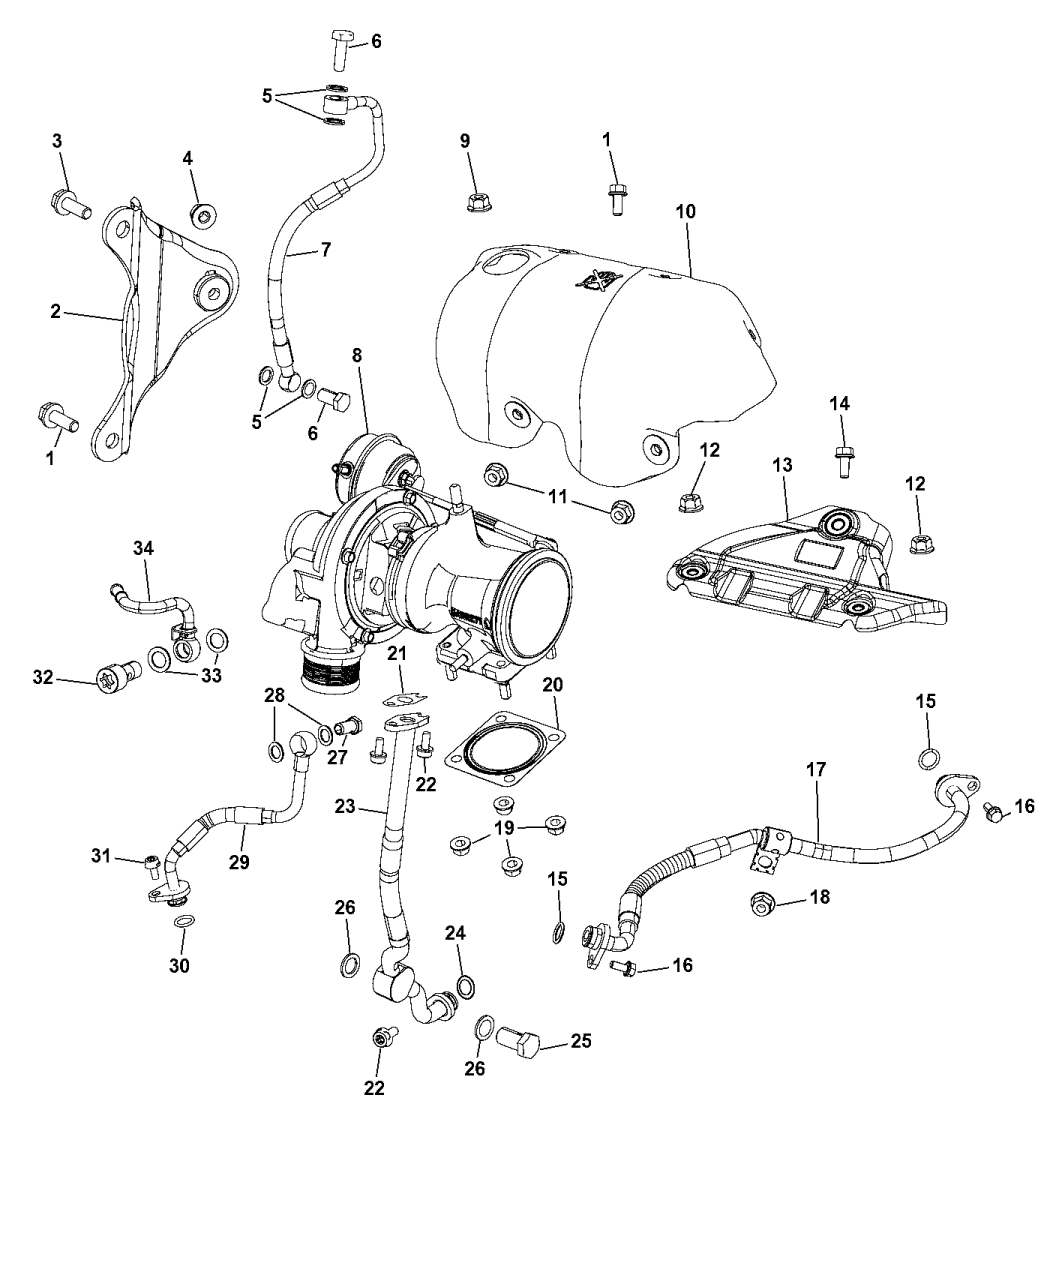 Dodge Dart Engine Diagram Wiring Library Toyota Supra Stock 2013 Turbocharger Oil Hoses Tubes